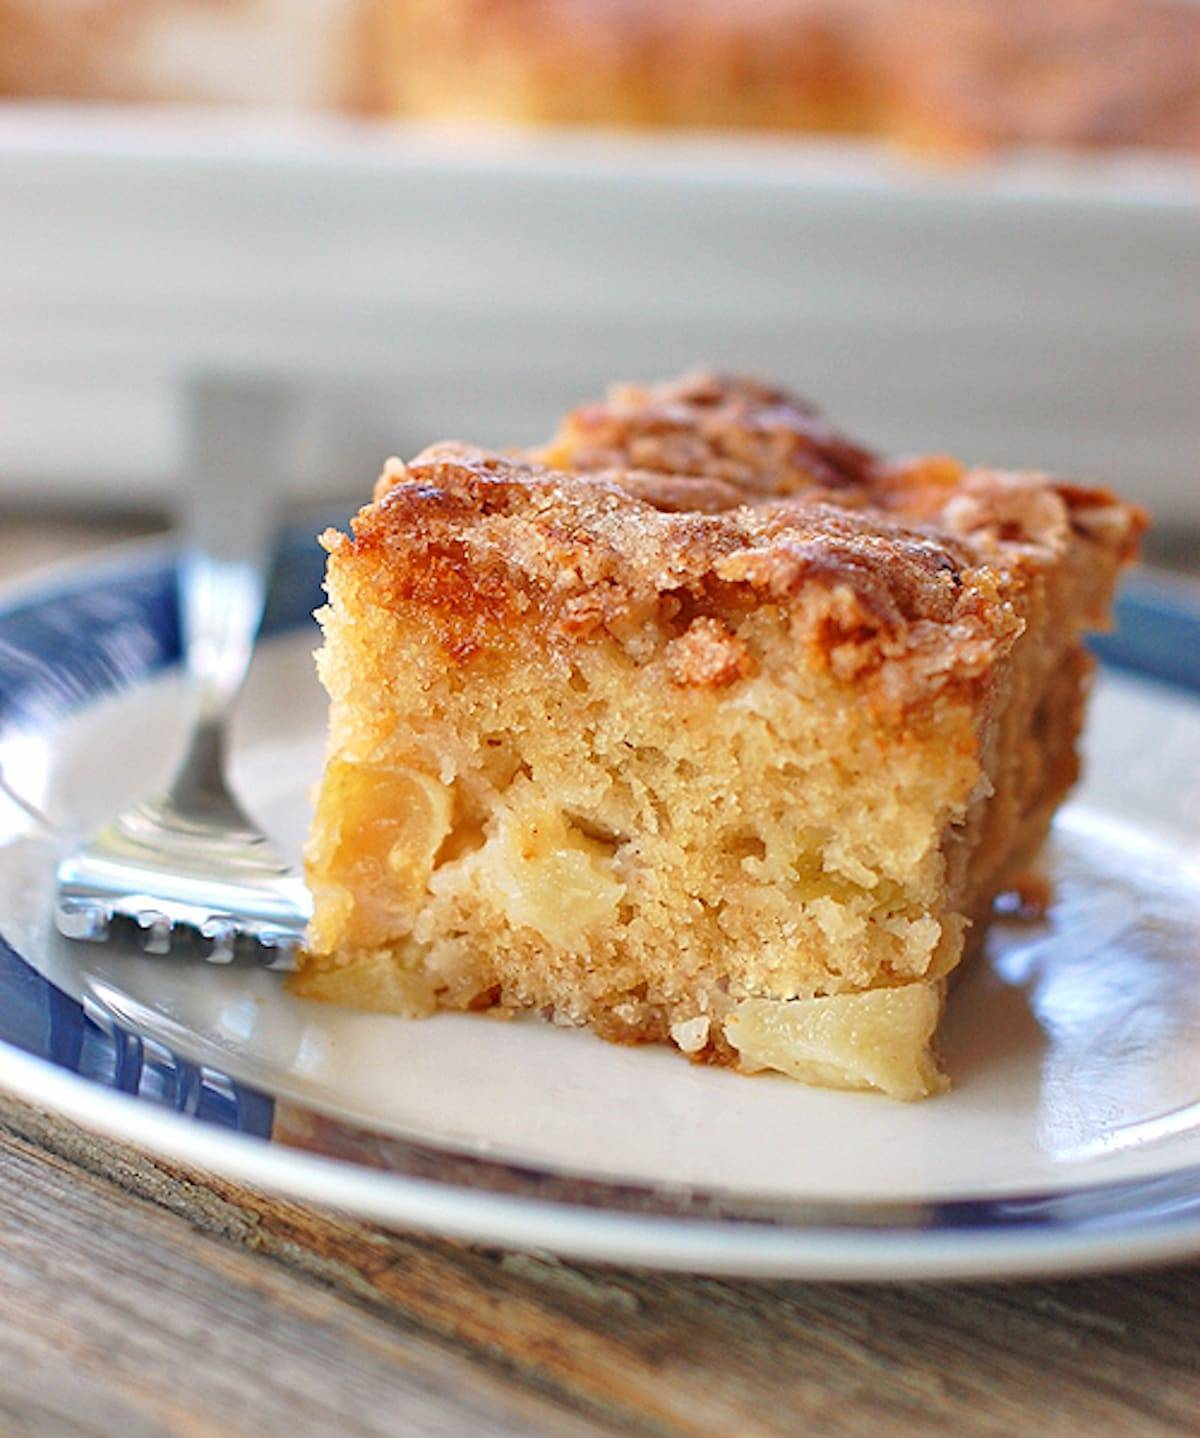 Cinnamon Sugar Apple Cake Recipe - Pinch of Yum